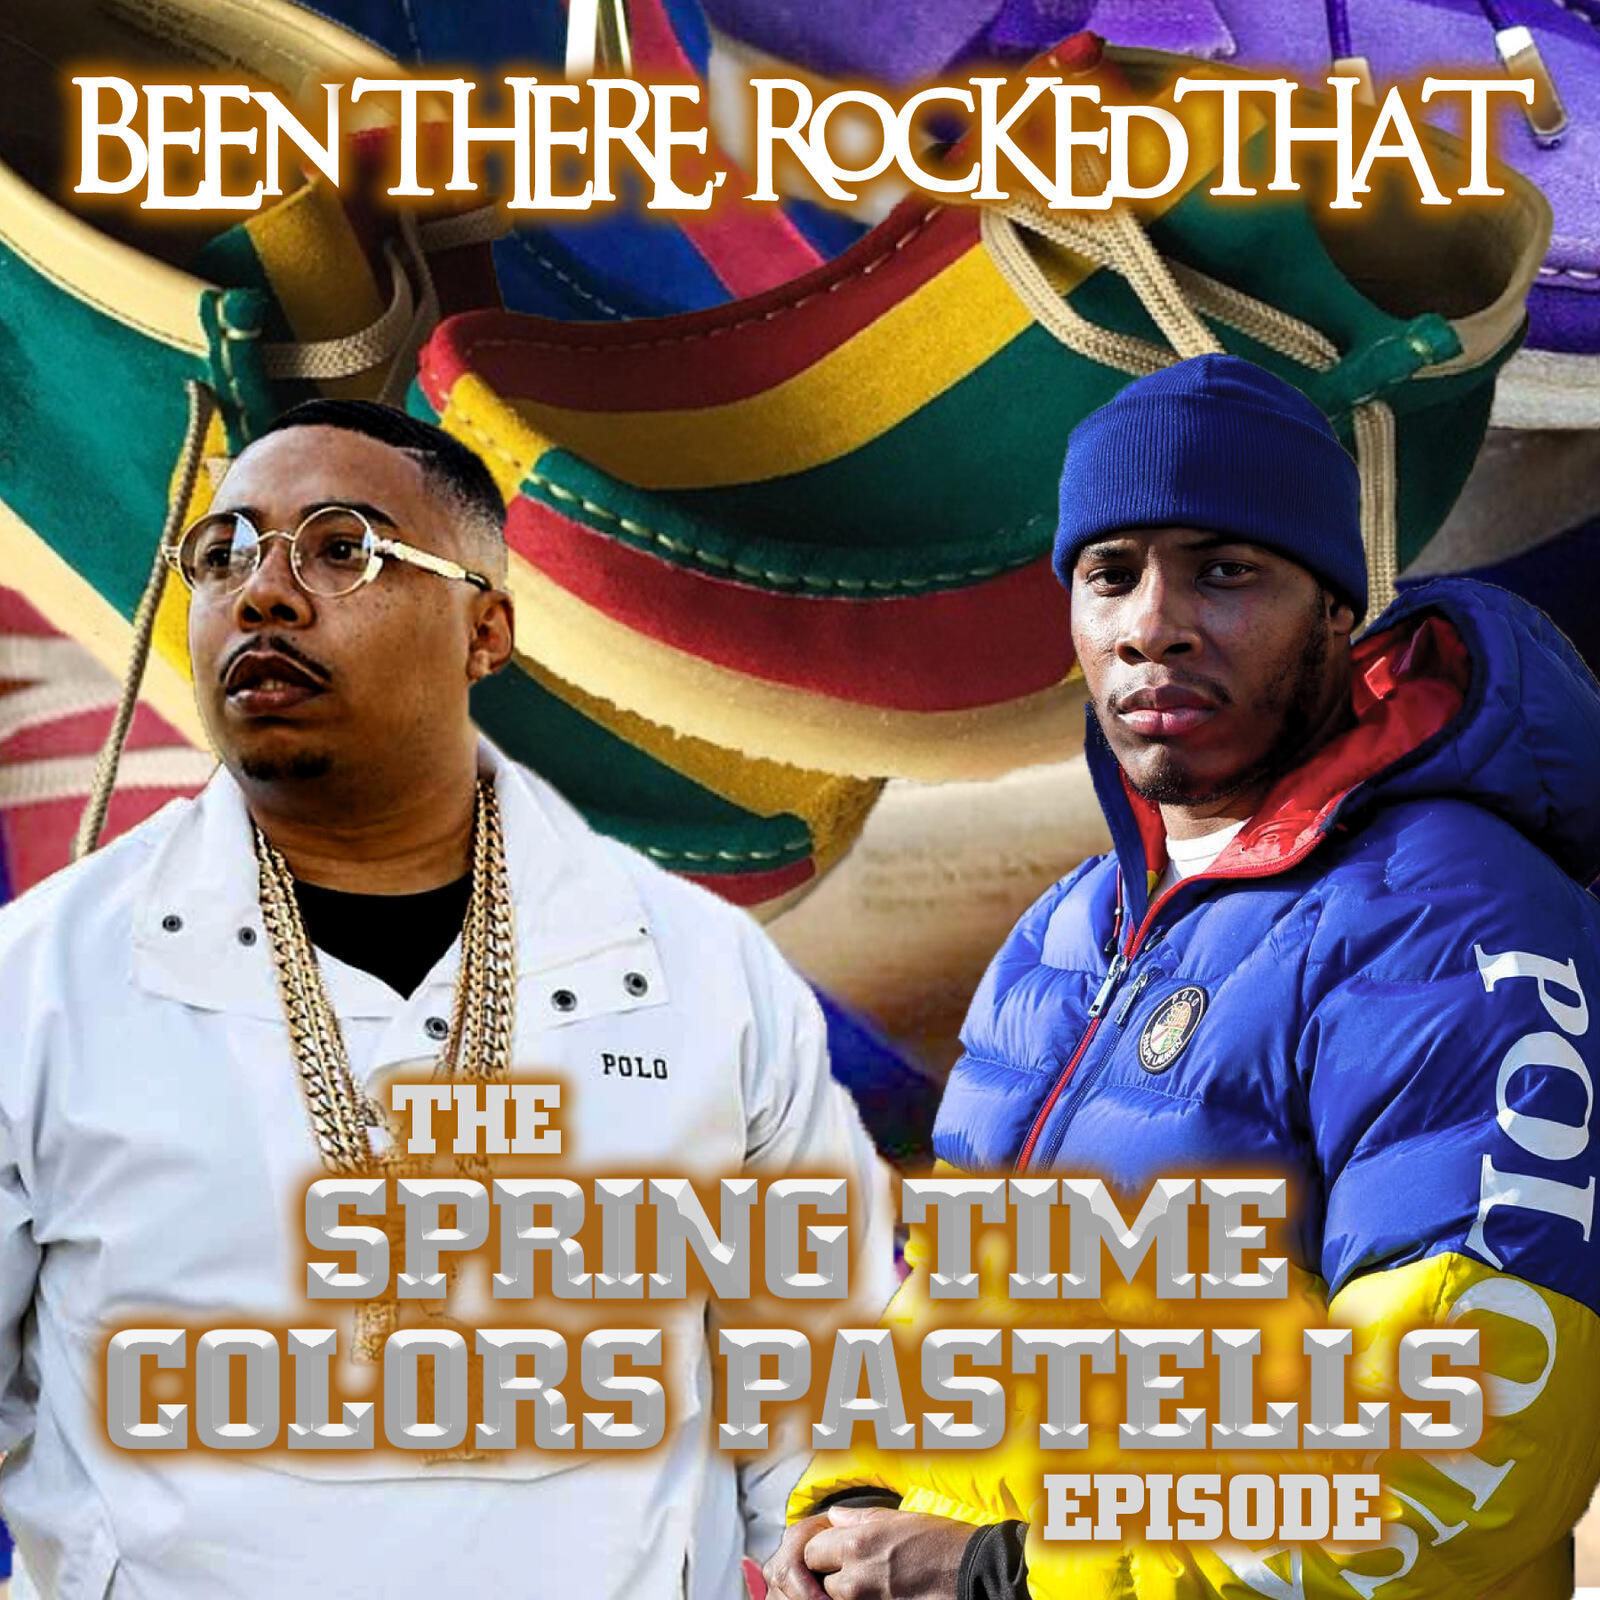 52: The Spring Time Colors Pastells Episode